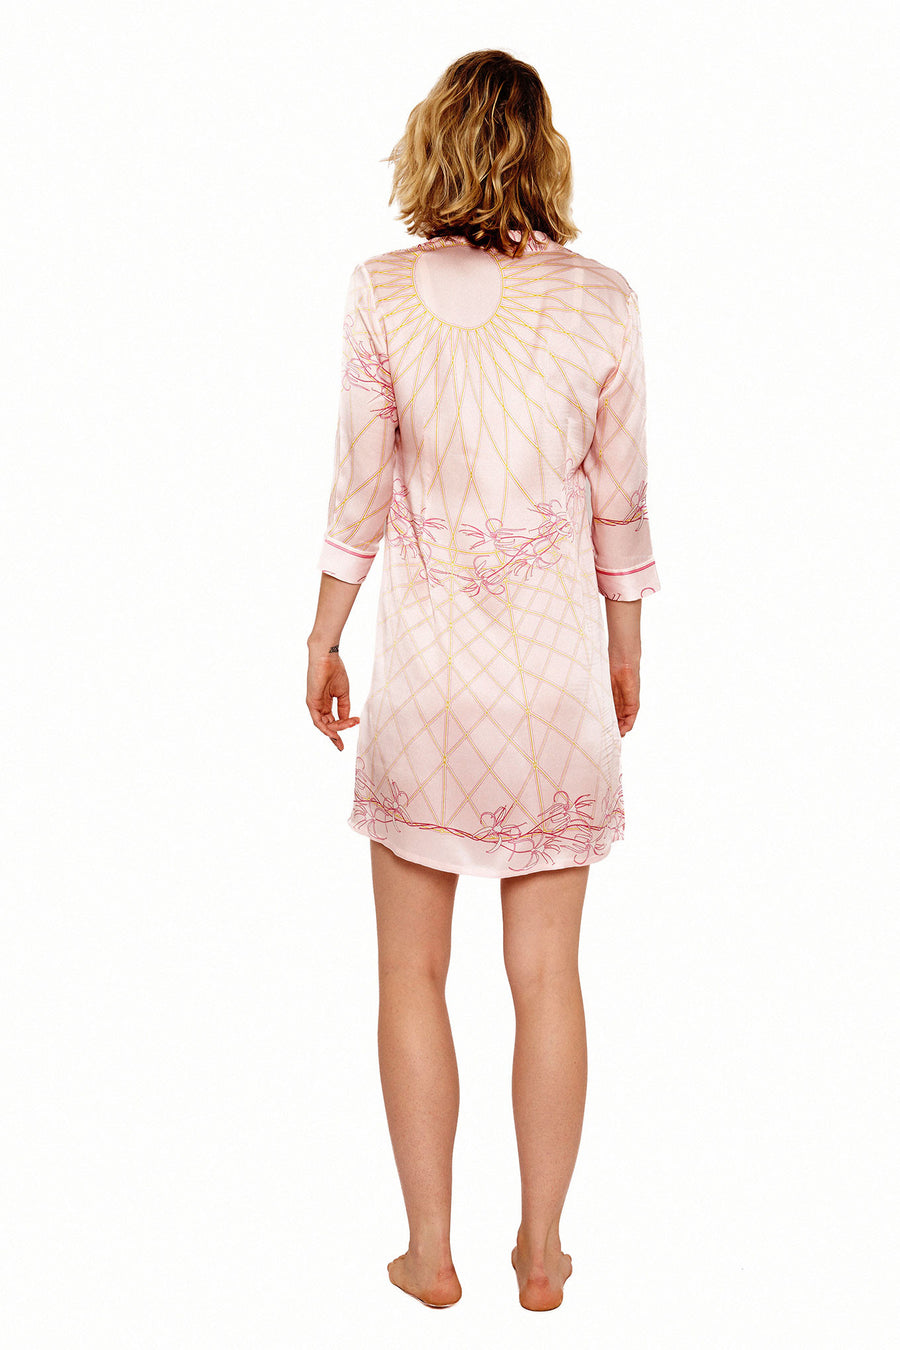 Lotty B Shirt Dress in Silk Crepe-de-Chine (Spiderlily Peach Pink)